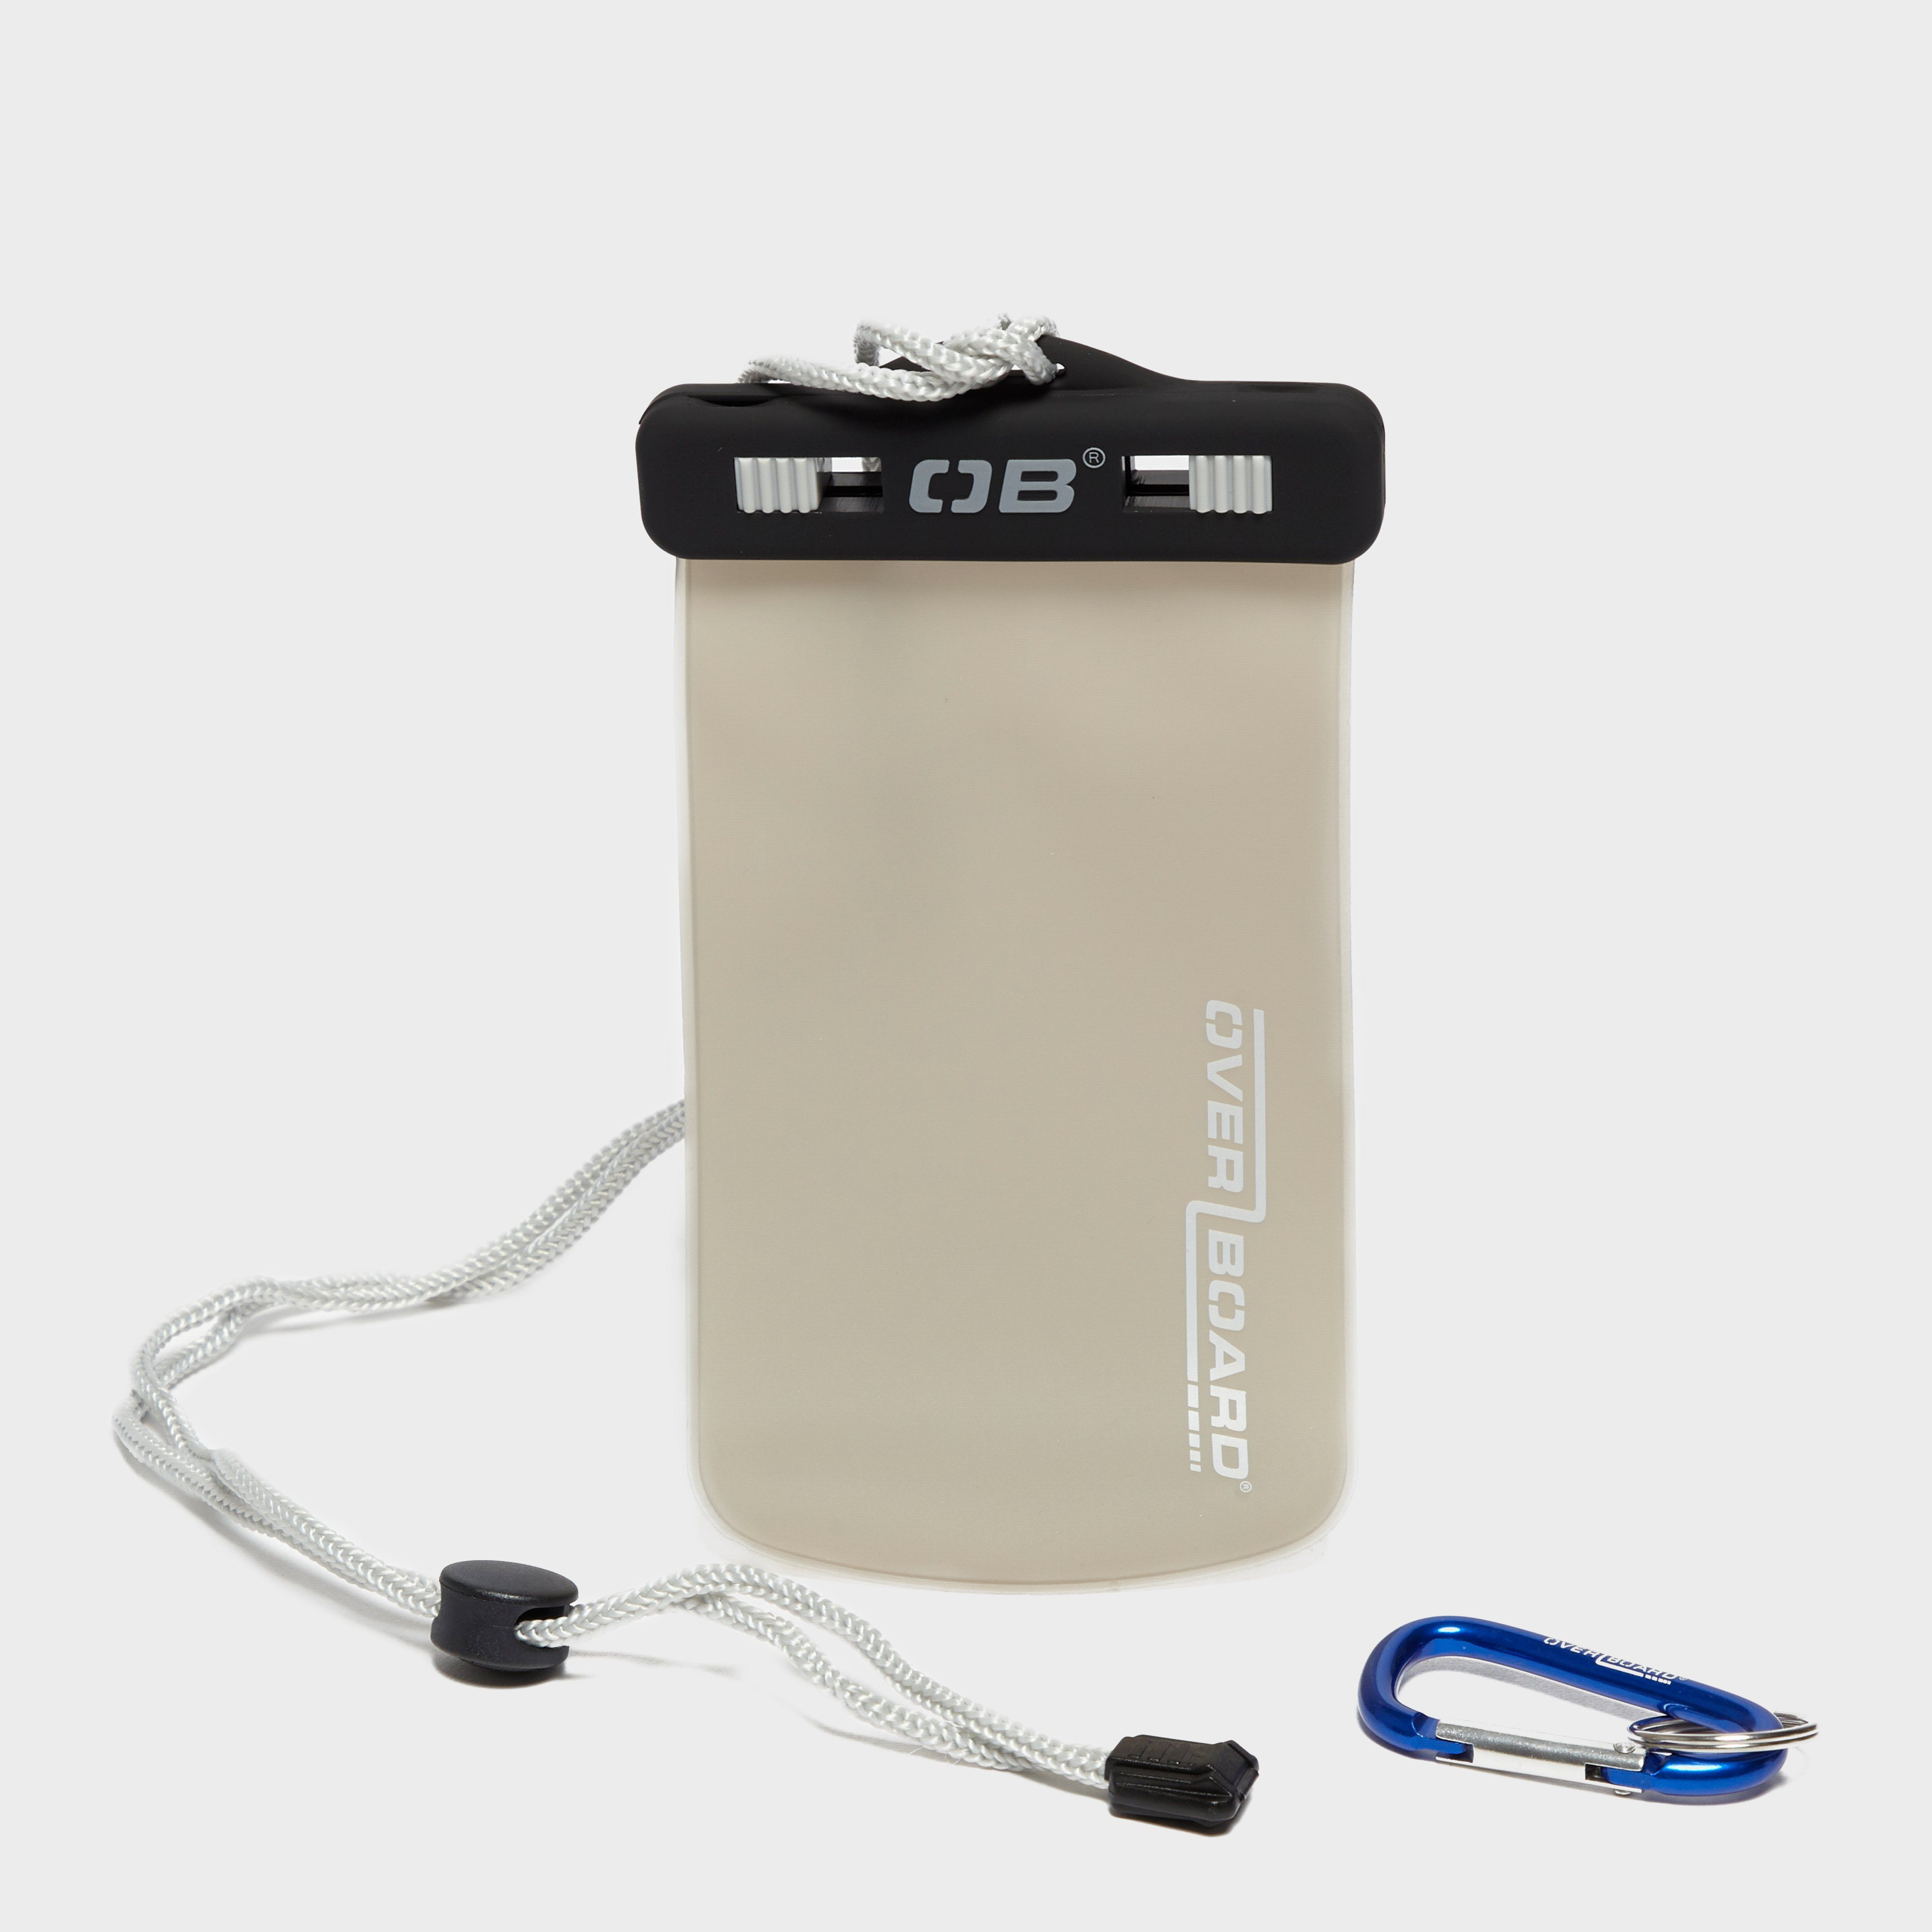 OVERBOARD Waterproof Mobile Phone Case (Small)